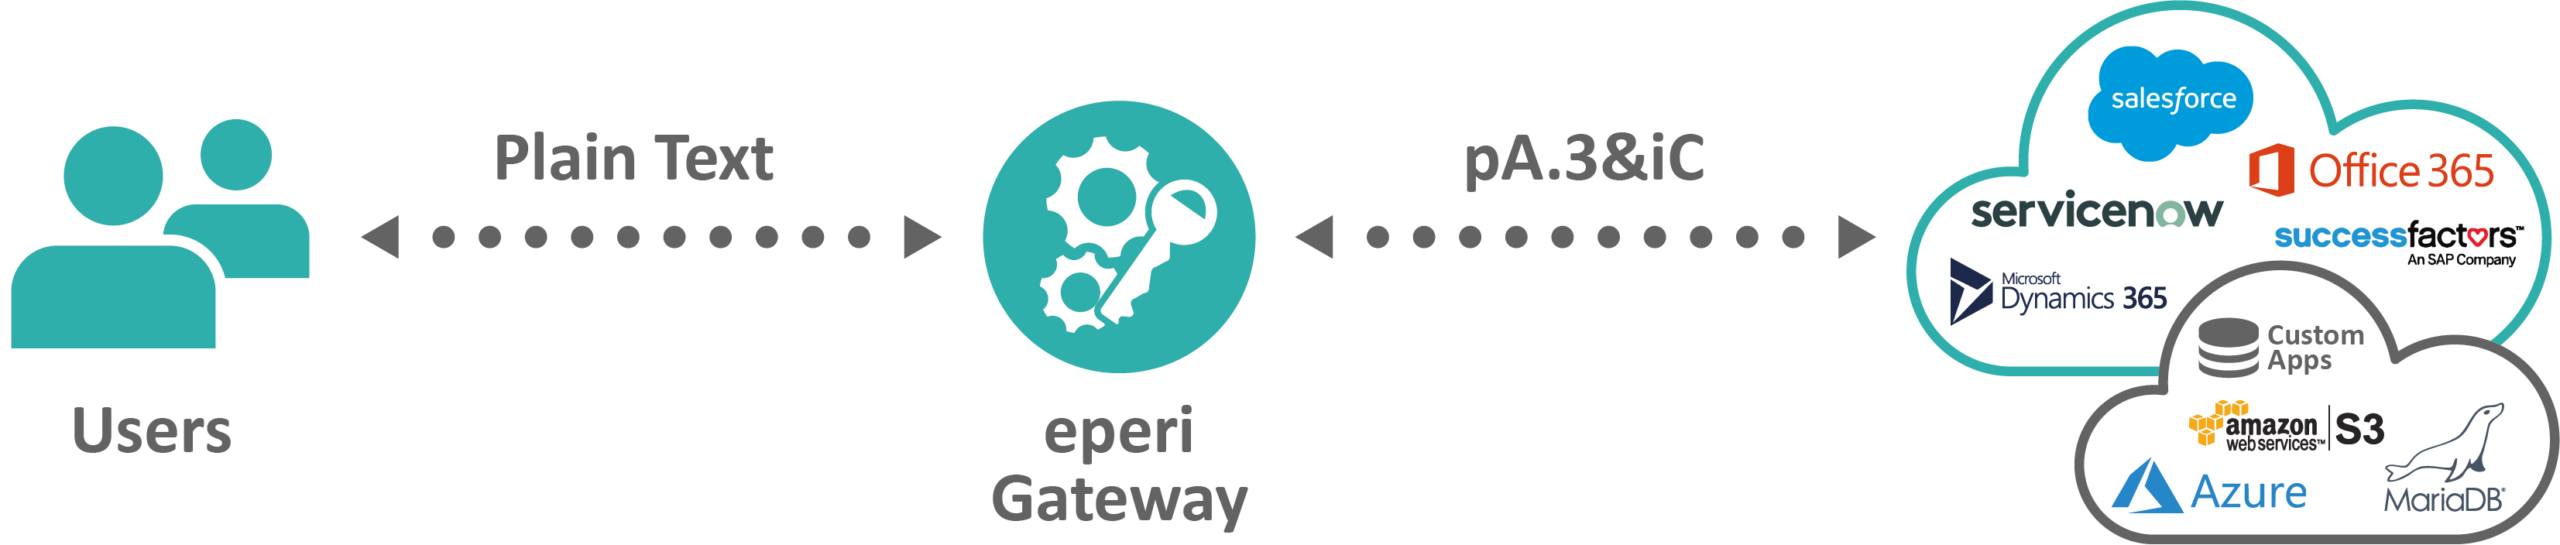 Infographic eperi Gateway Cloud Data Protection